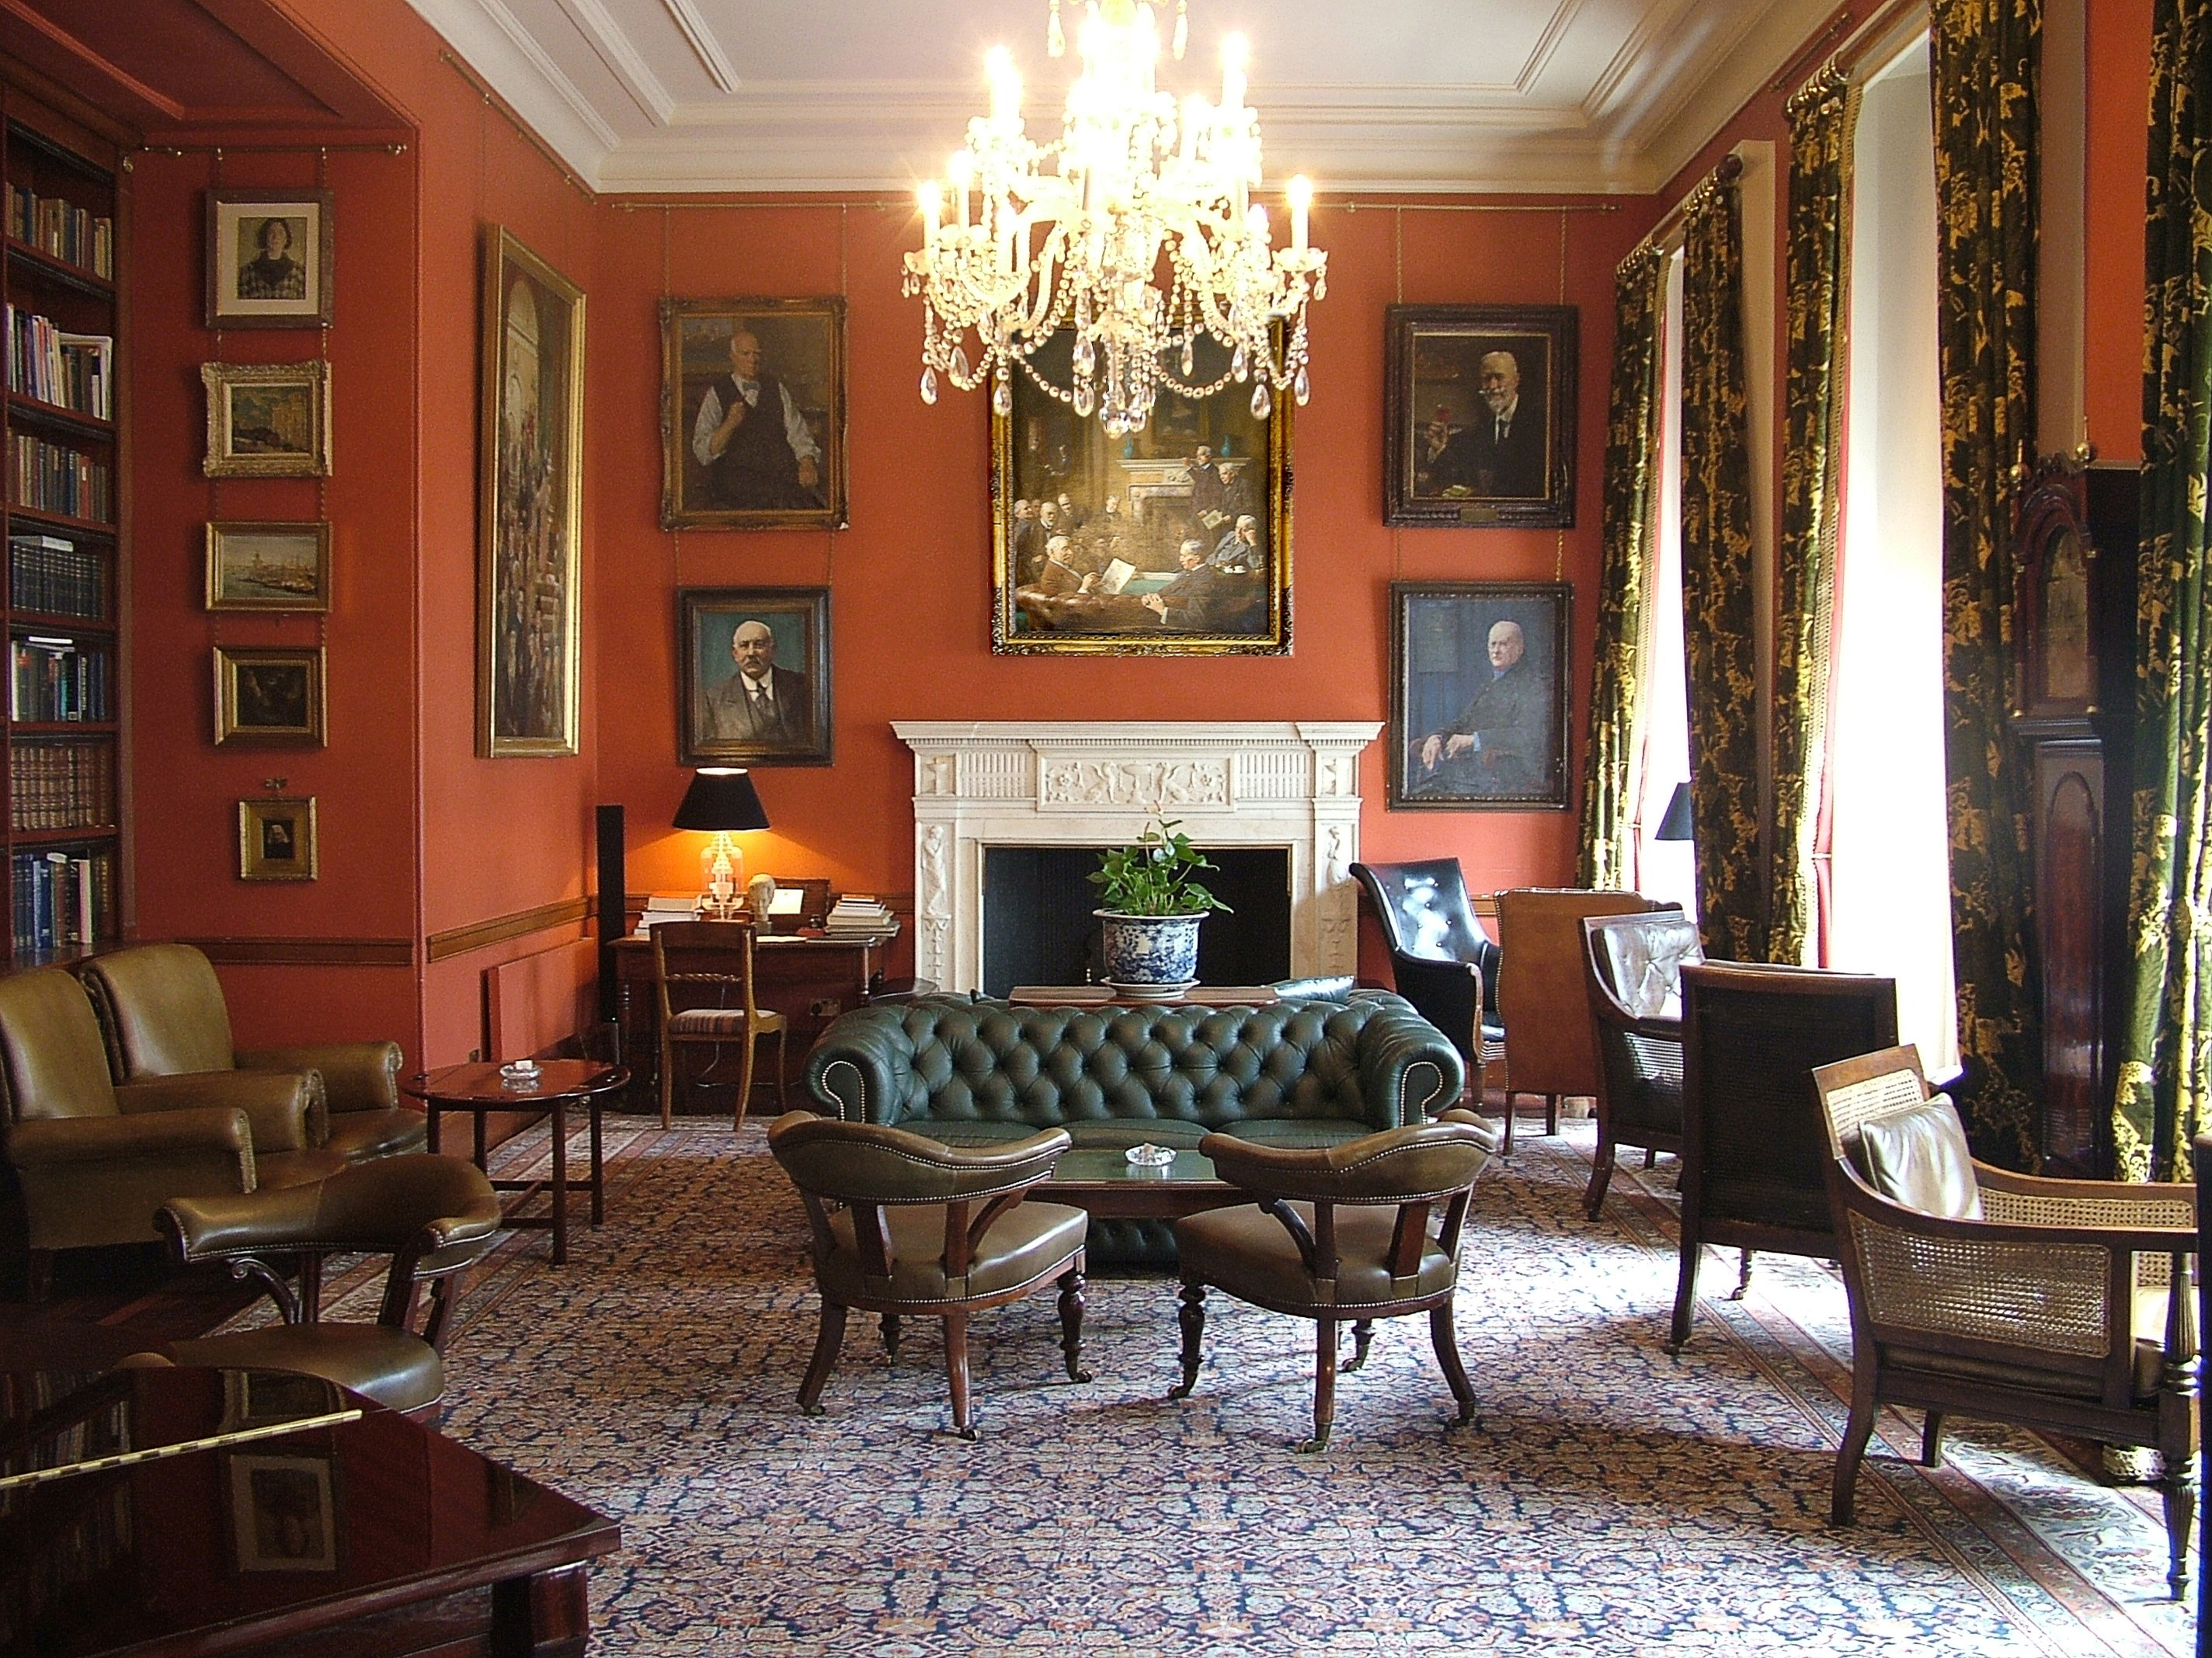 File:BC Drawing Room Good Picture.jpg